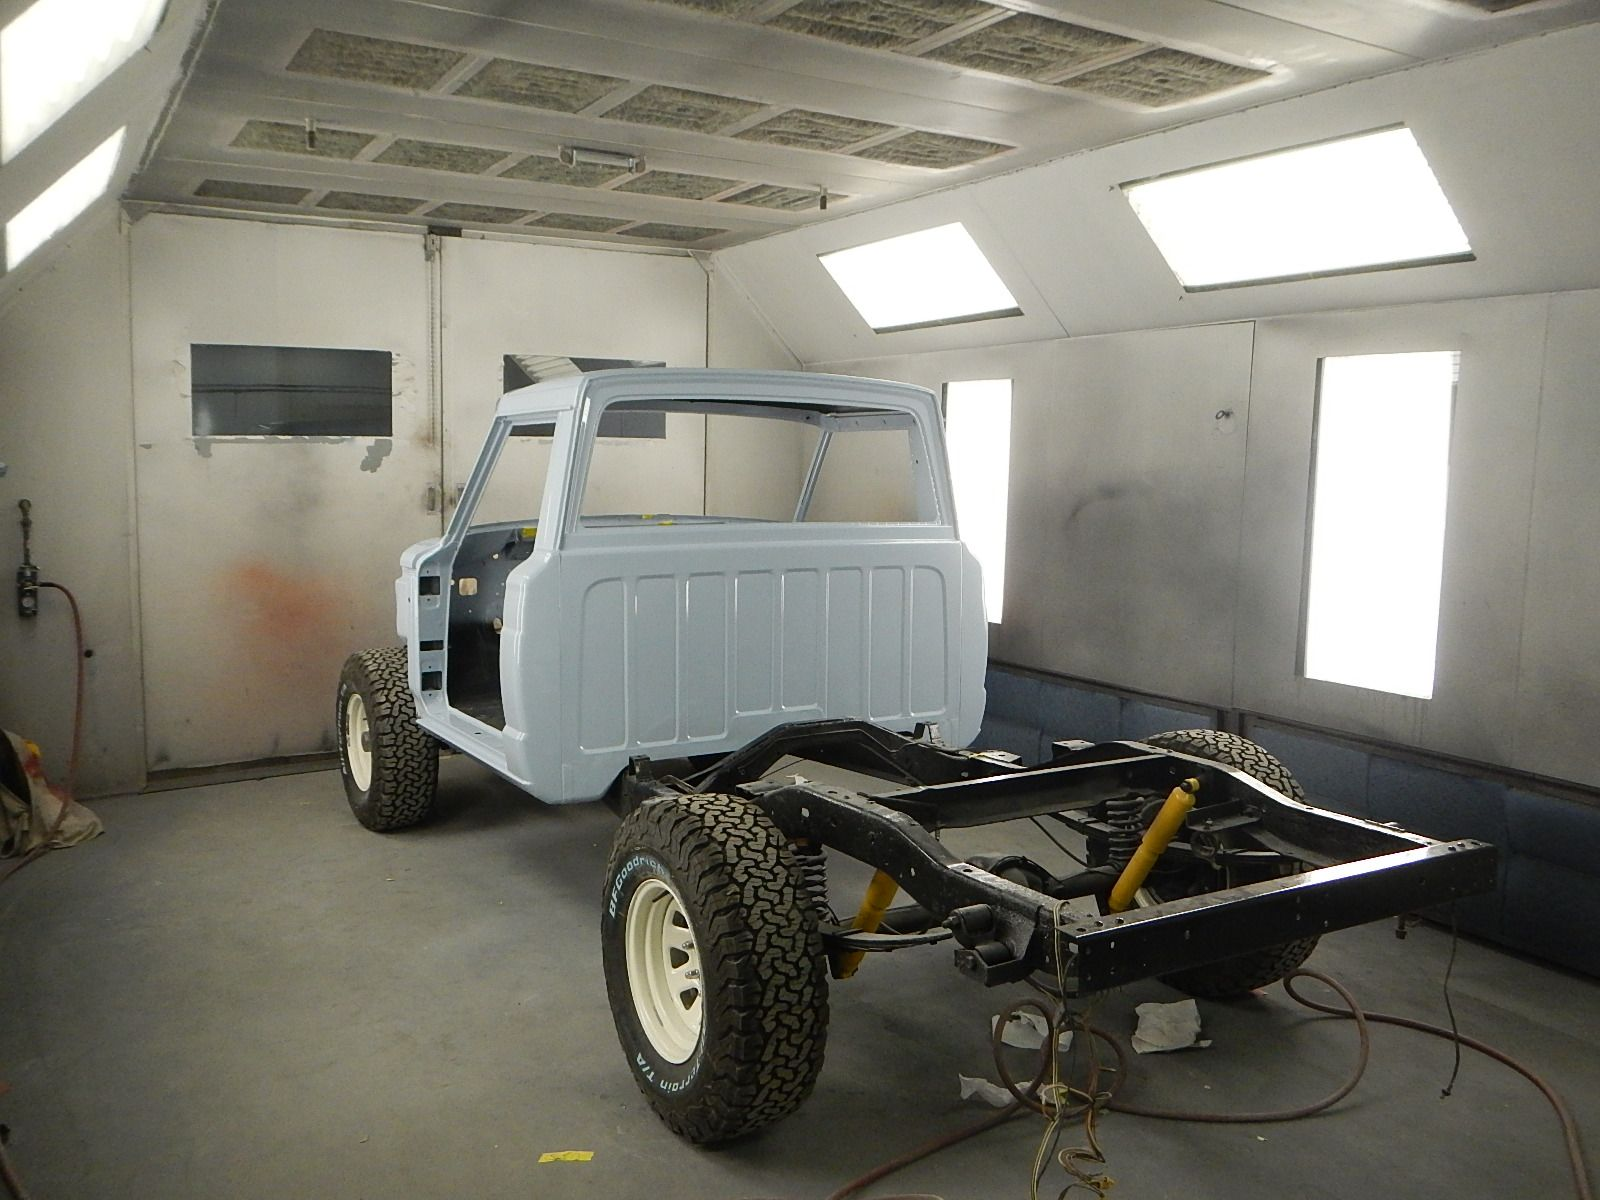 1979 Jeep J-10 Honcho restore 4x4 parts 054.jpg